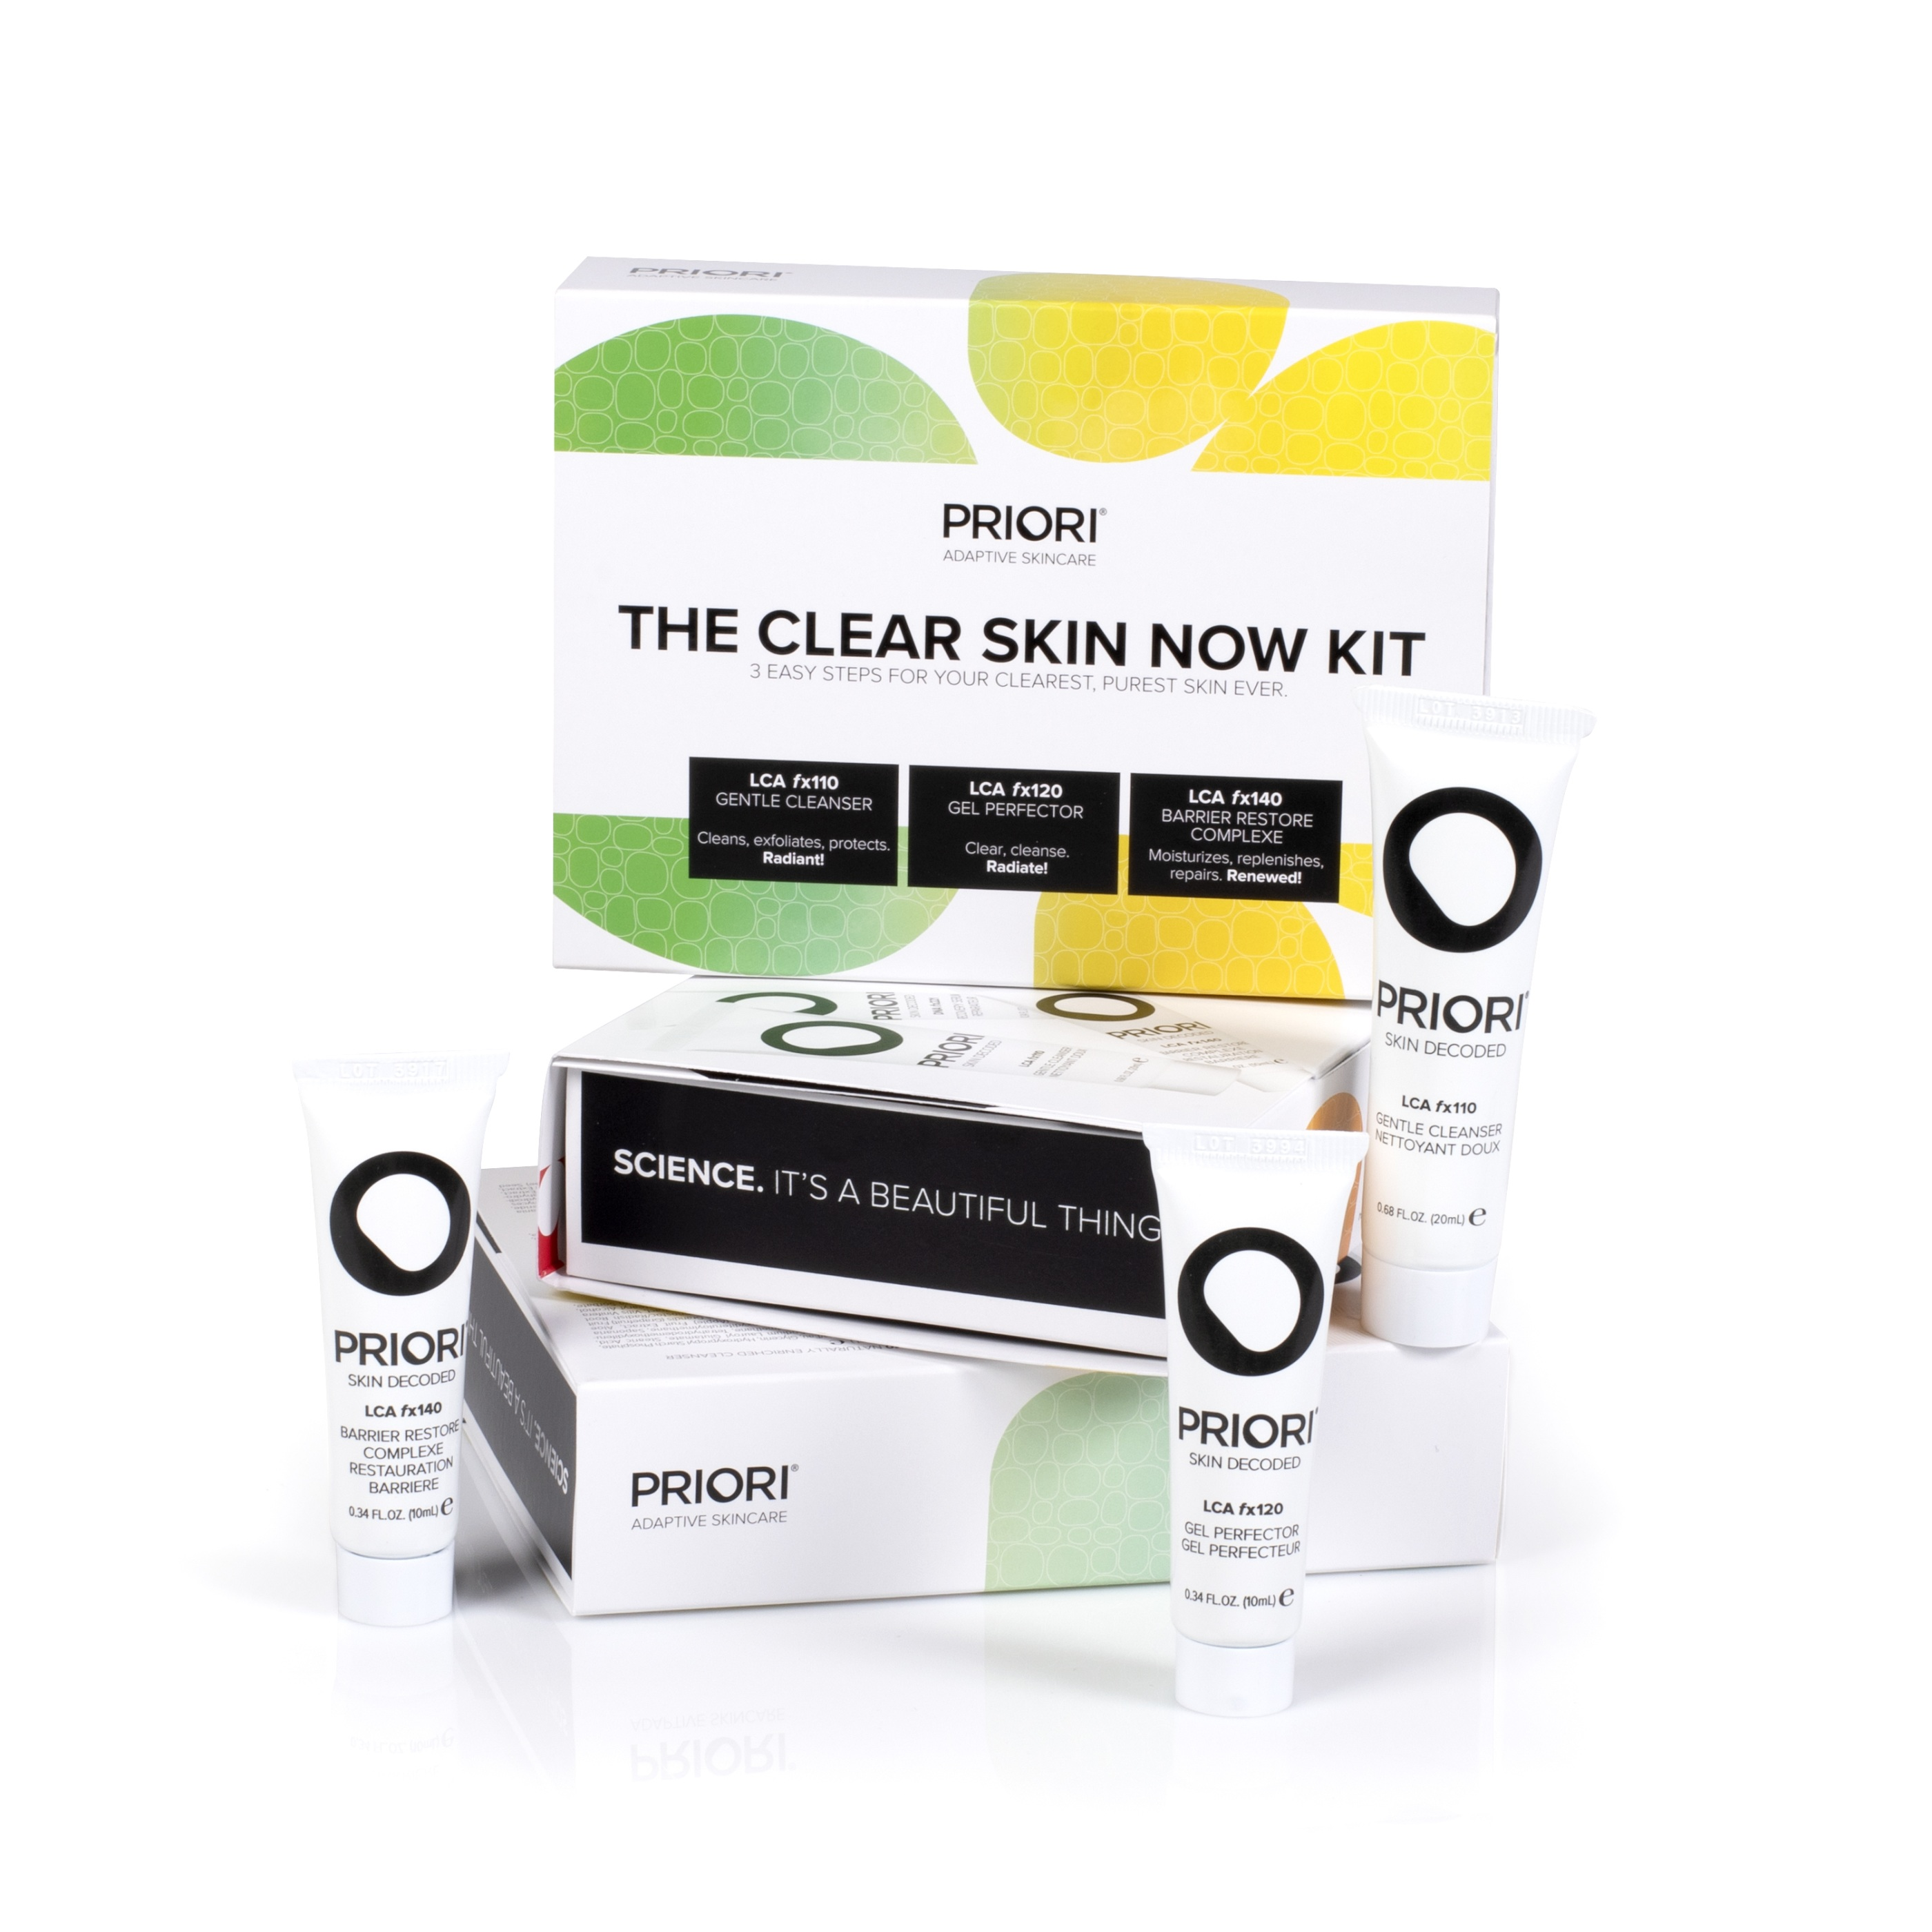 Priori_New_Product_Photos_Clear_Skin_Kit_Editorial